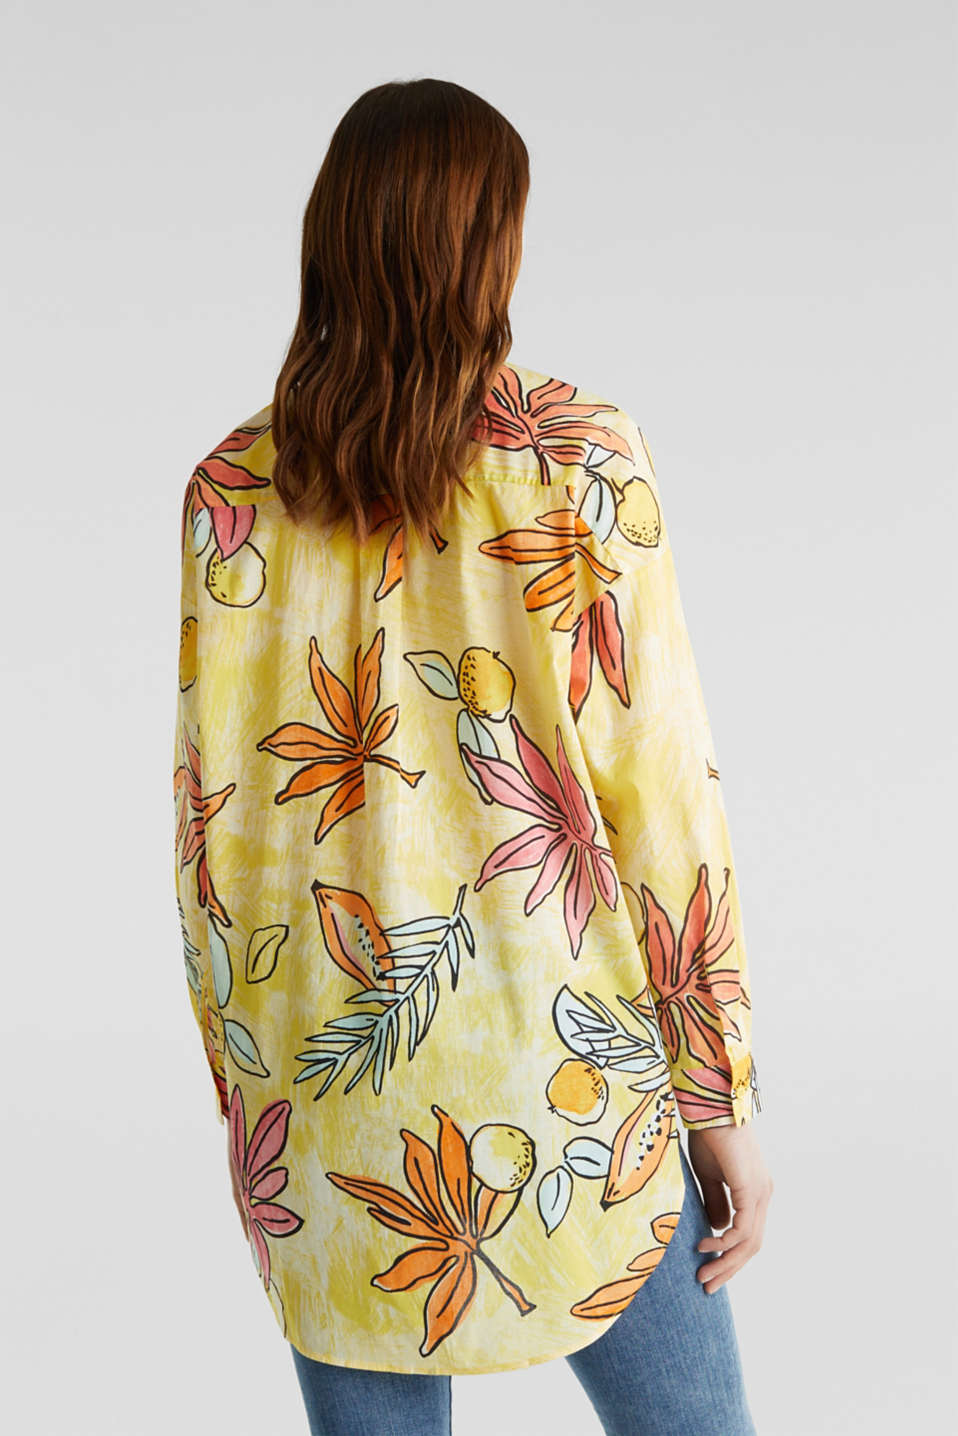 Longbluse mit Print, 100% Baumwolle, BRIGHT YELLOW 4, detail image number 3